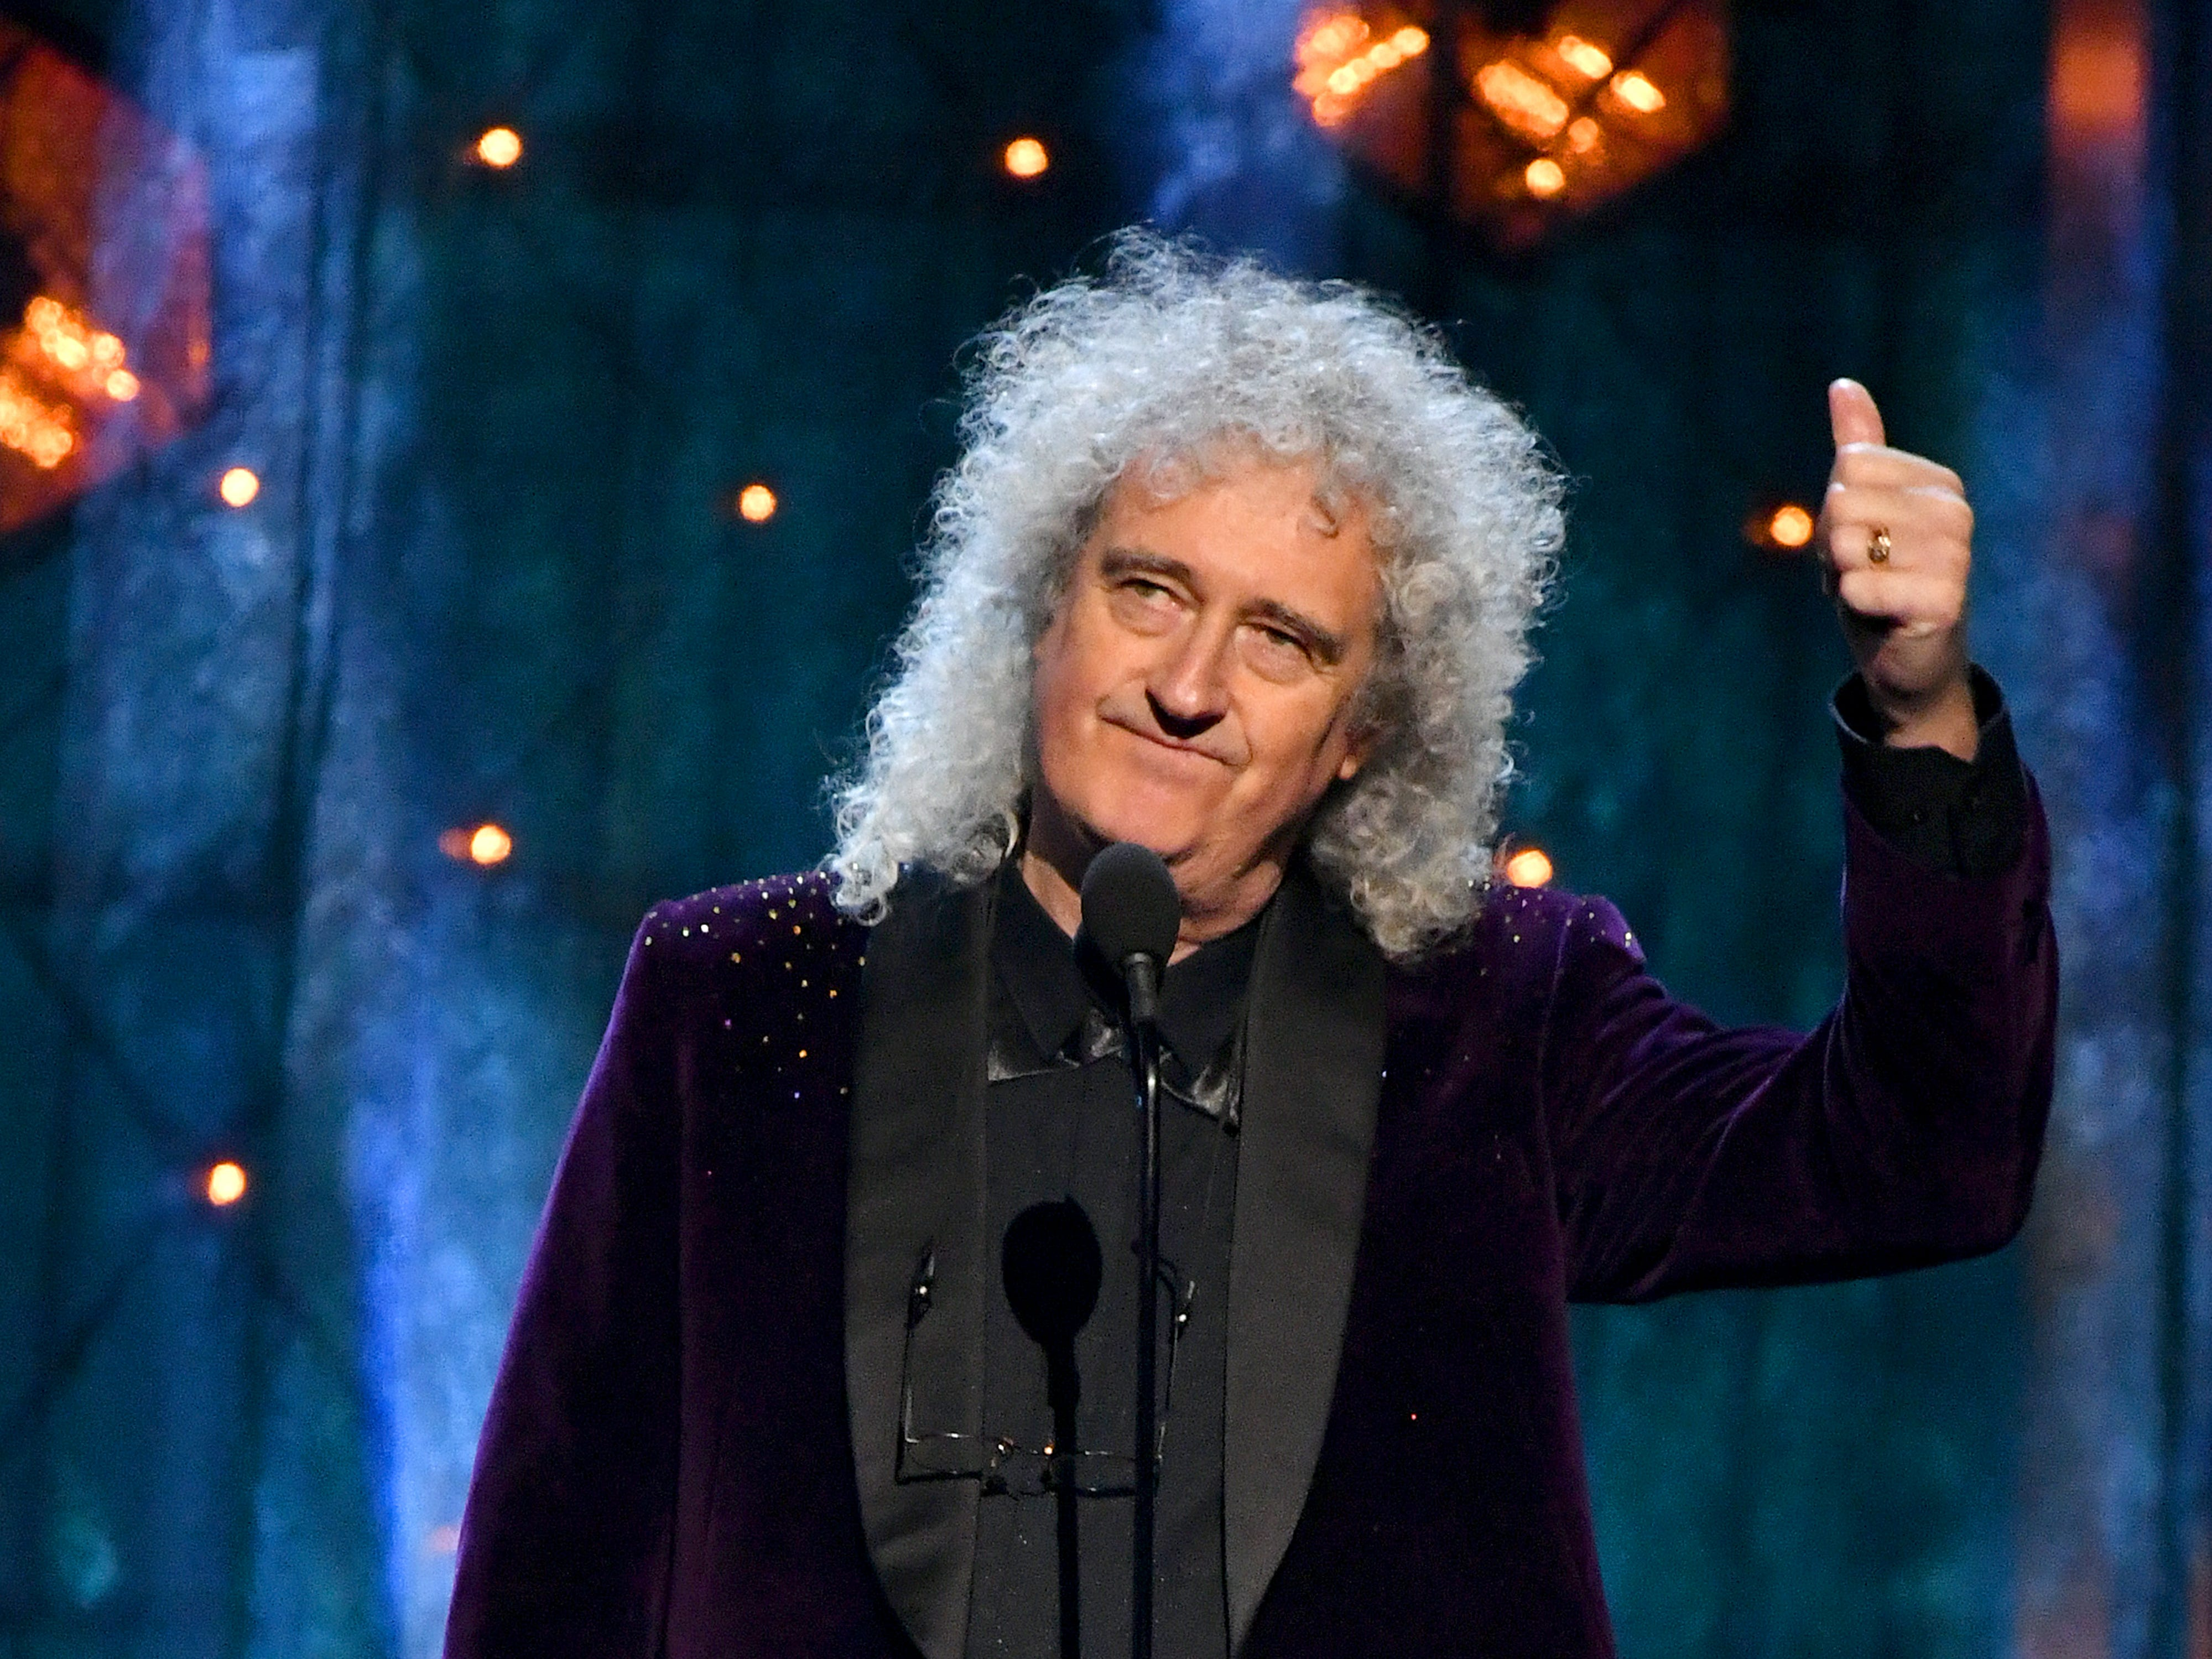 Queen's Brian May shares stories about old friends Def Leppard, inducted into the Rock Hall this year.